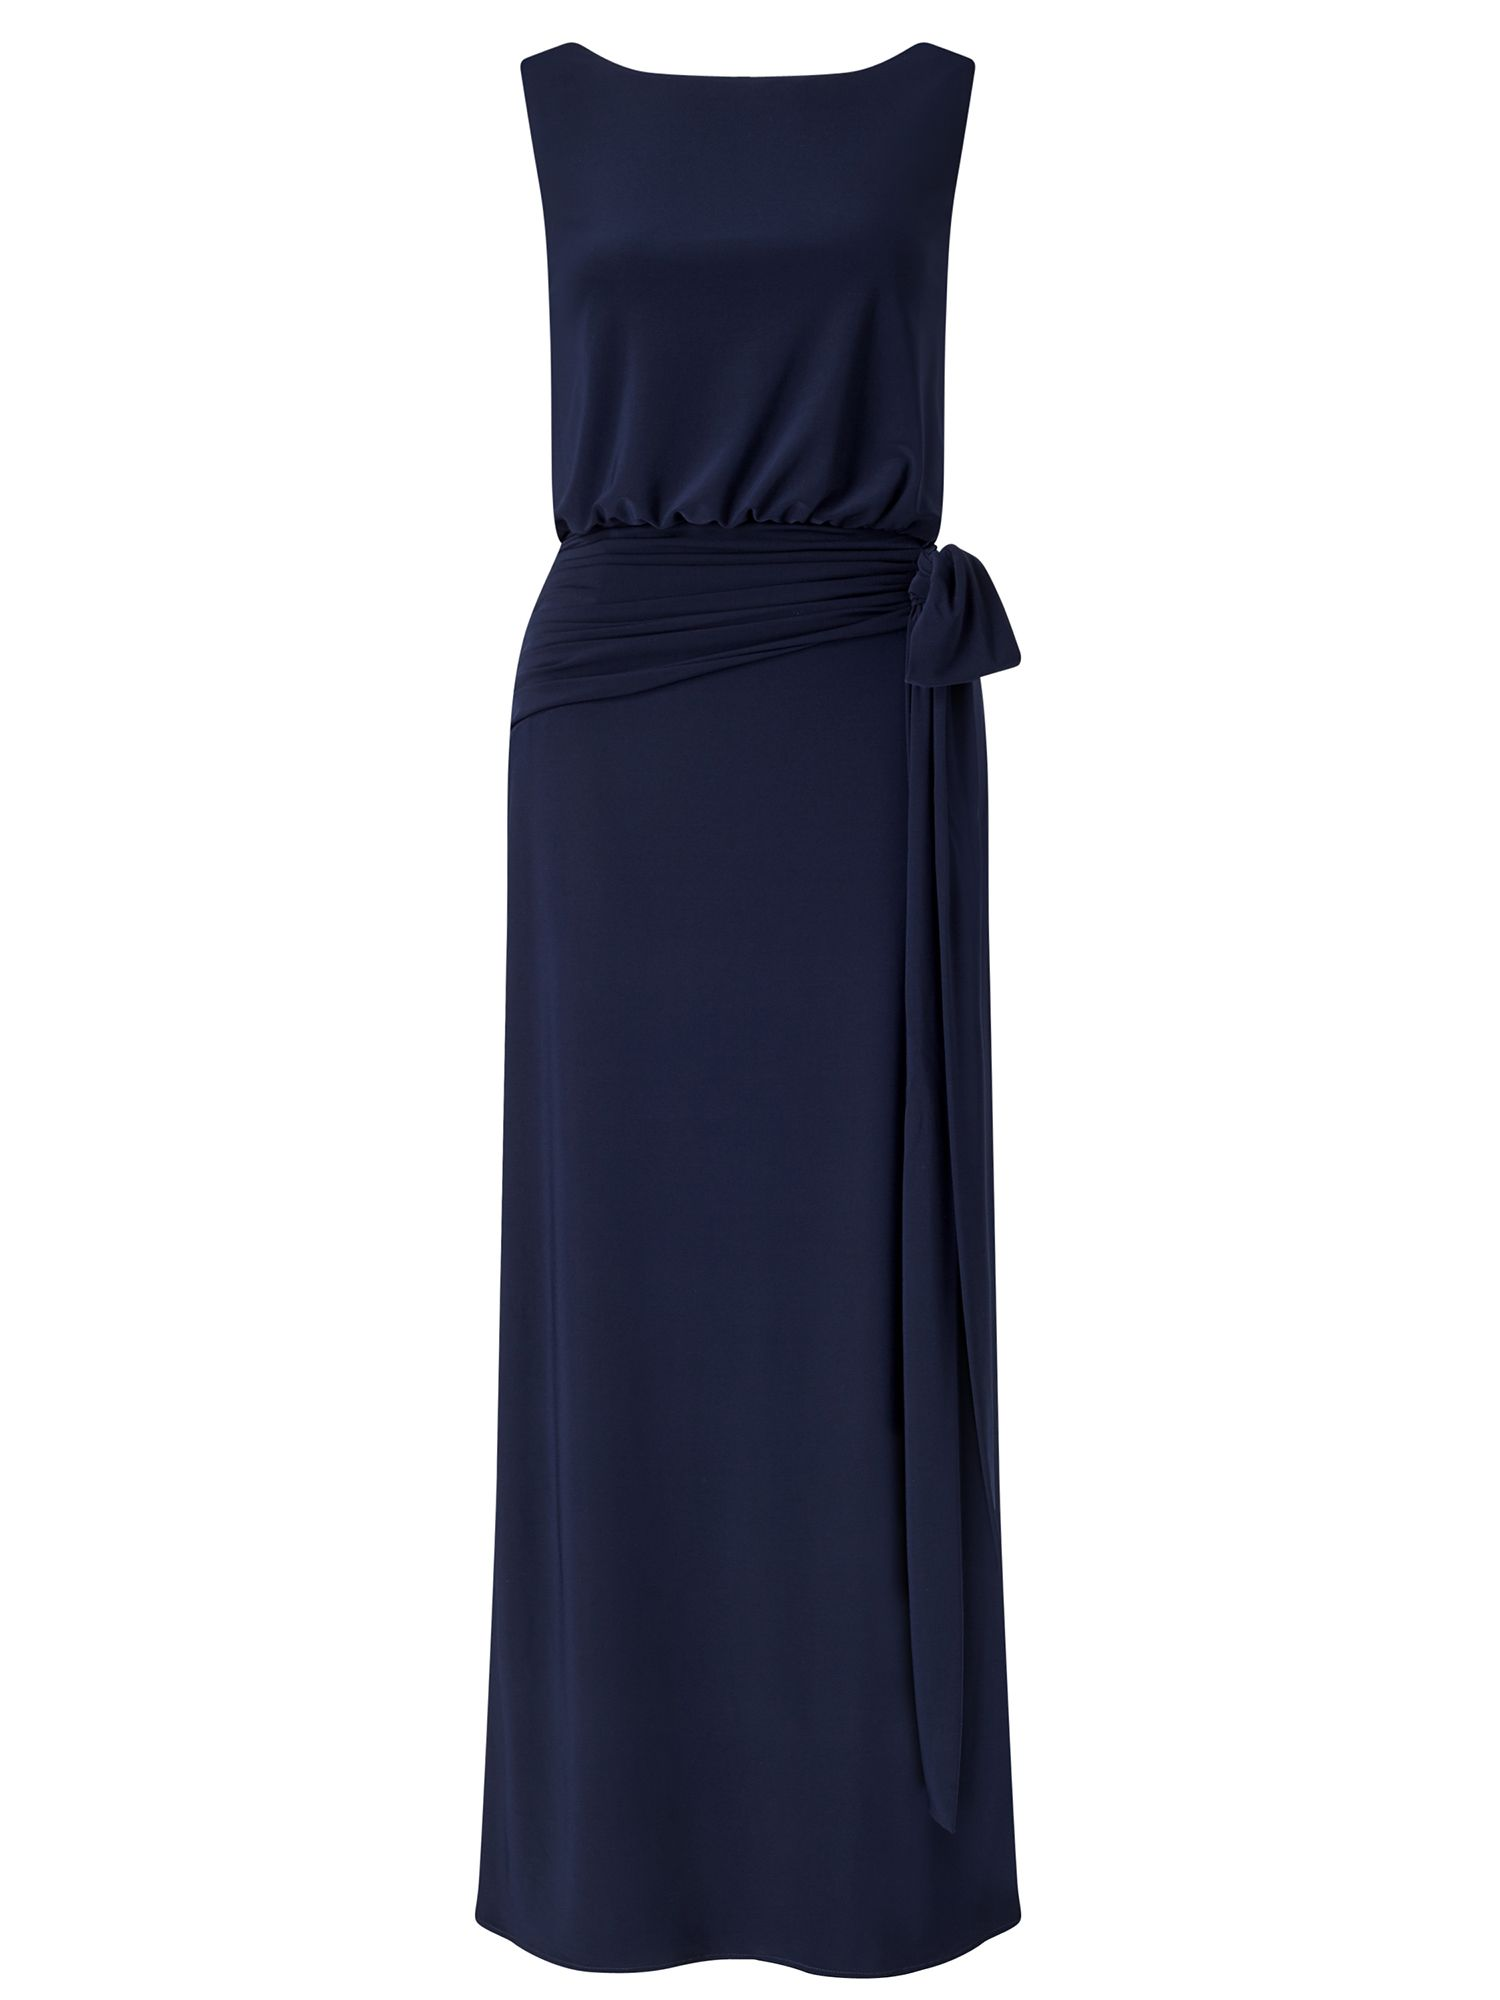 Ariella Grecia Jersey Dress, Blue